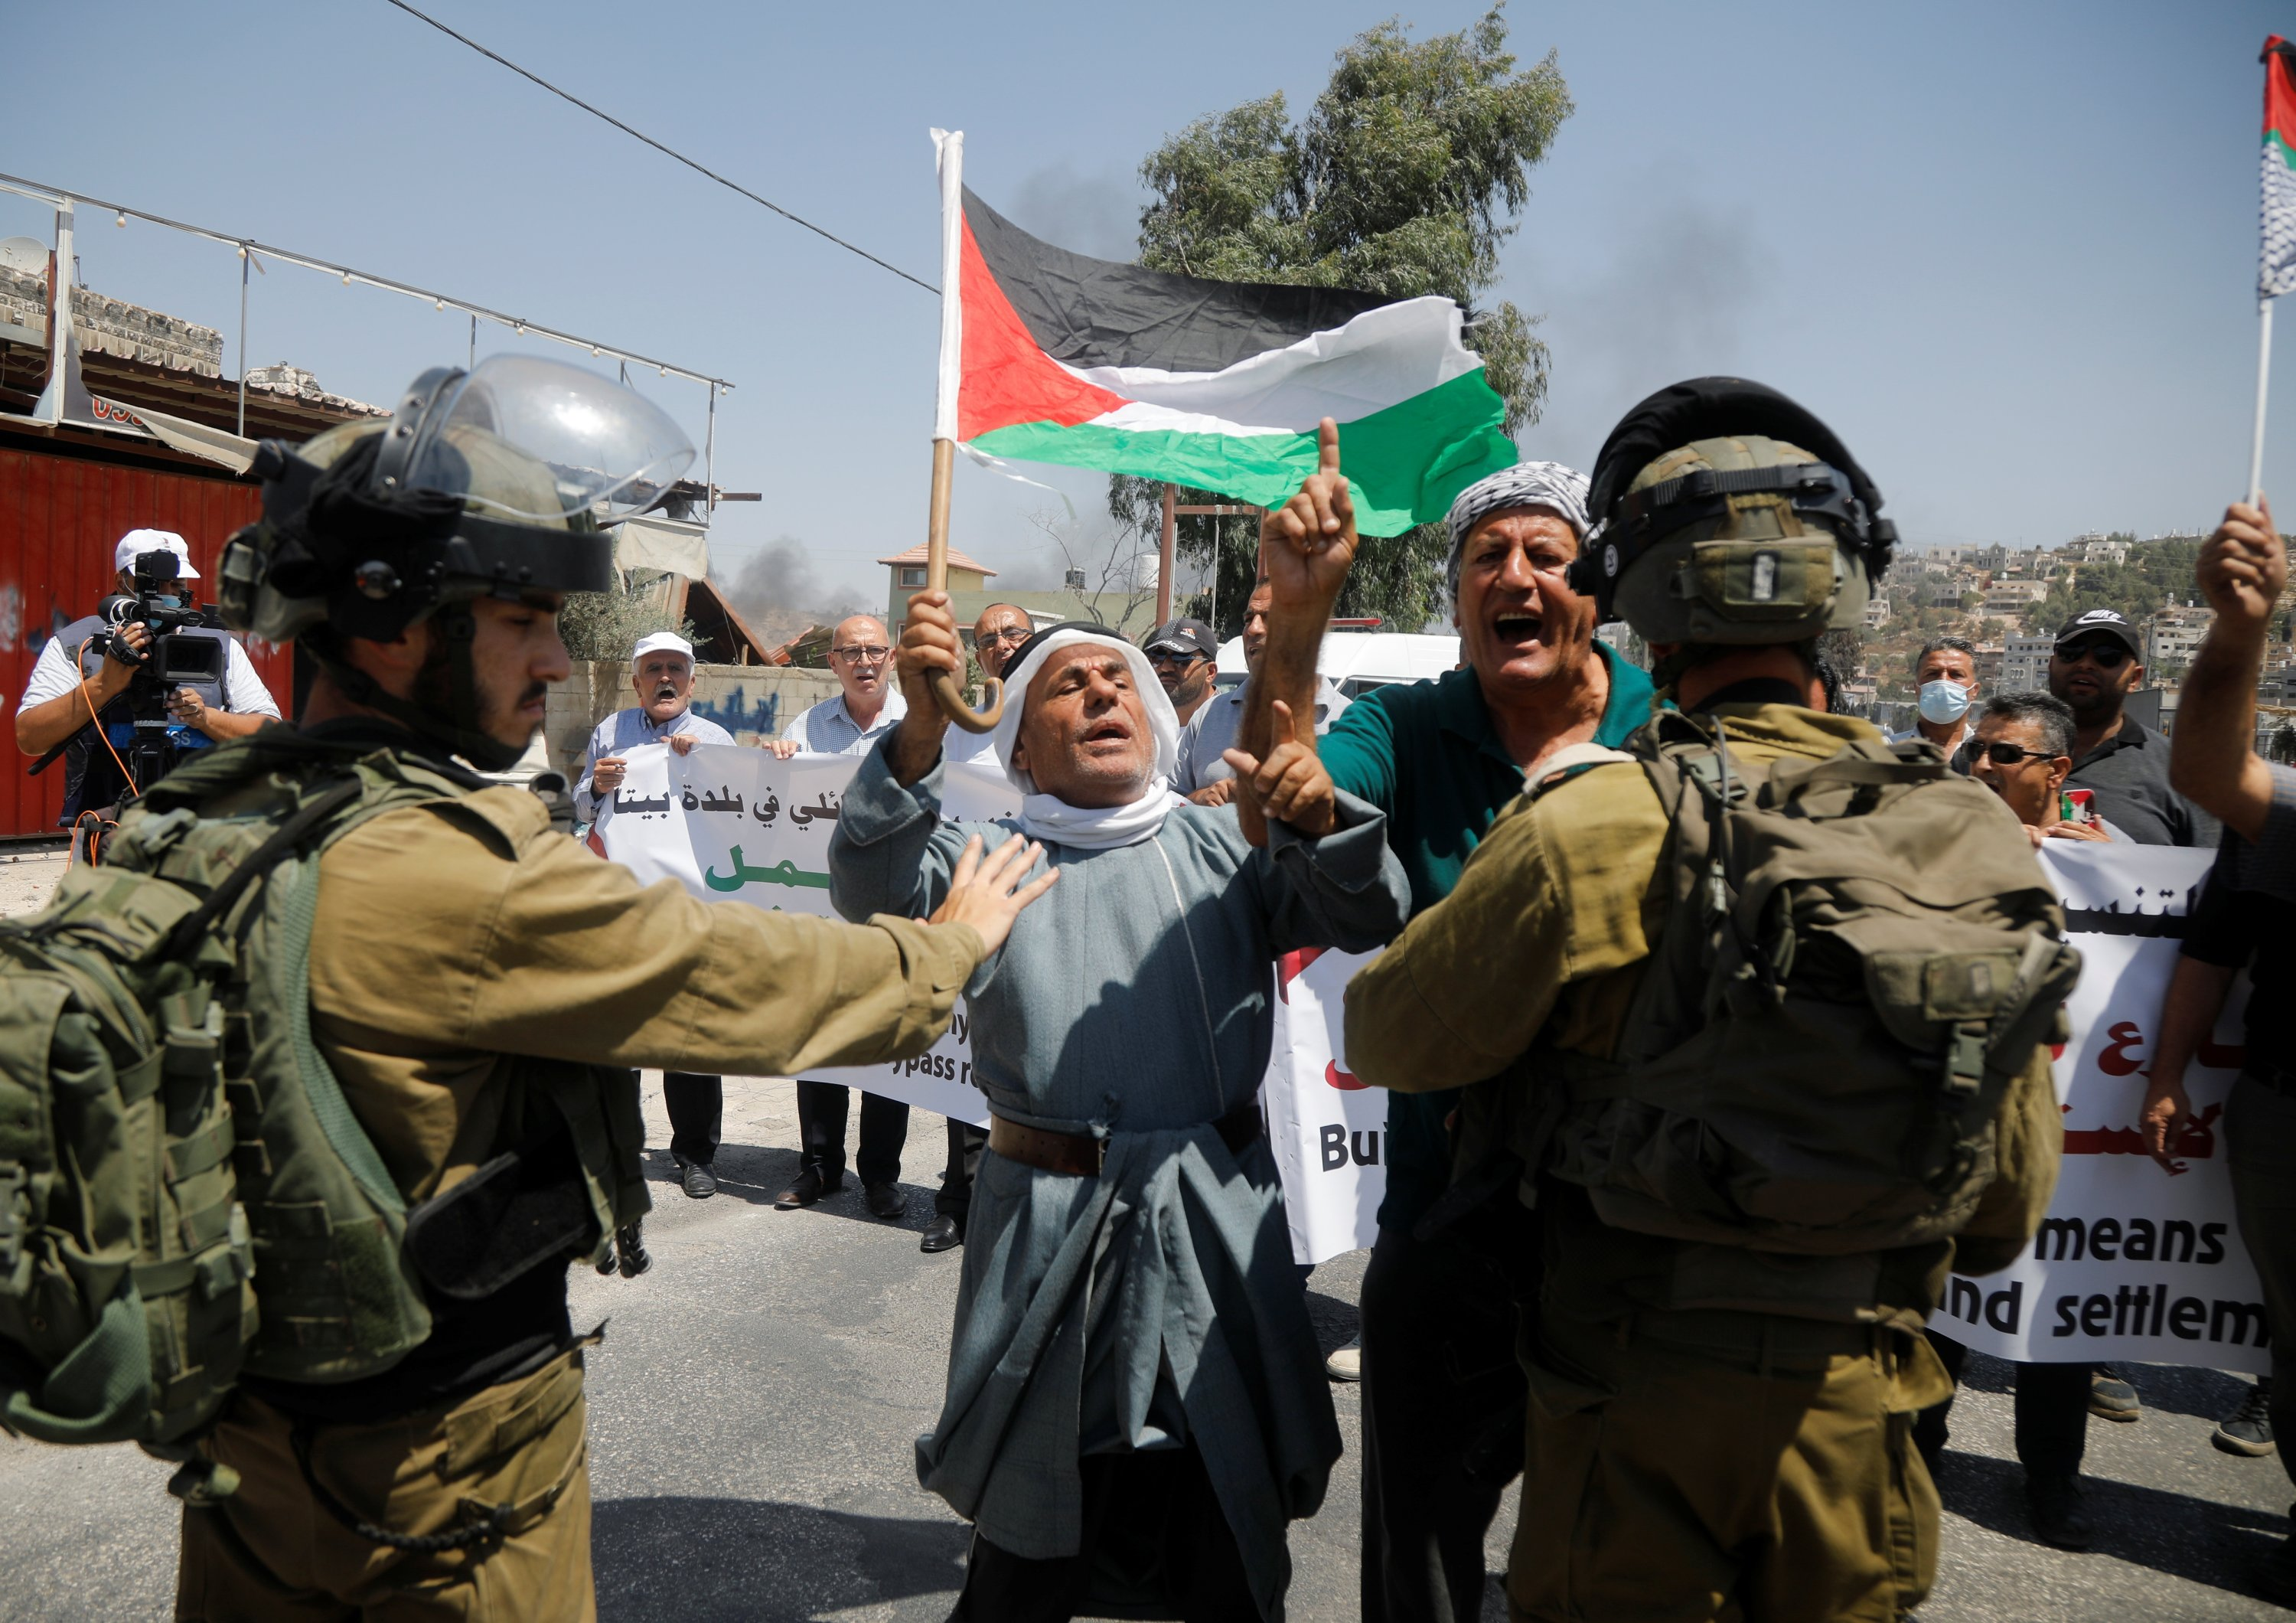 A Palestinian protester waves the flag of Palestine as Israeli soldiers stand guard during a protest against Israeli settlements in Beita, in the Israeli-occupied West Bank, August 25, 2021 (Raneen Sawafta / Reuters)